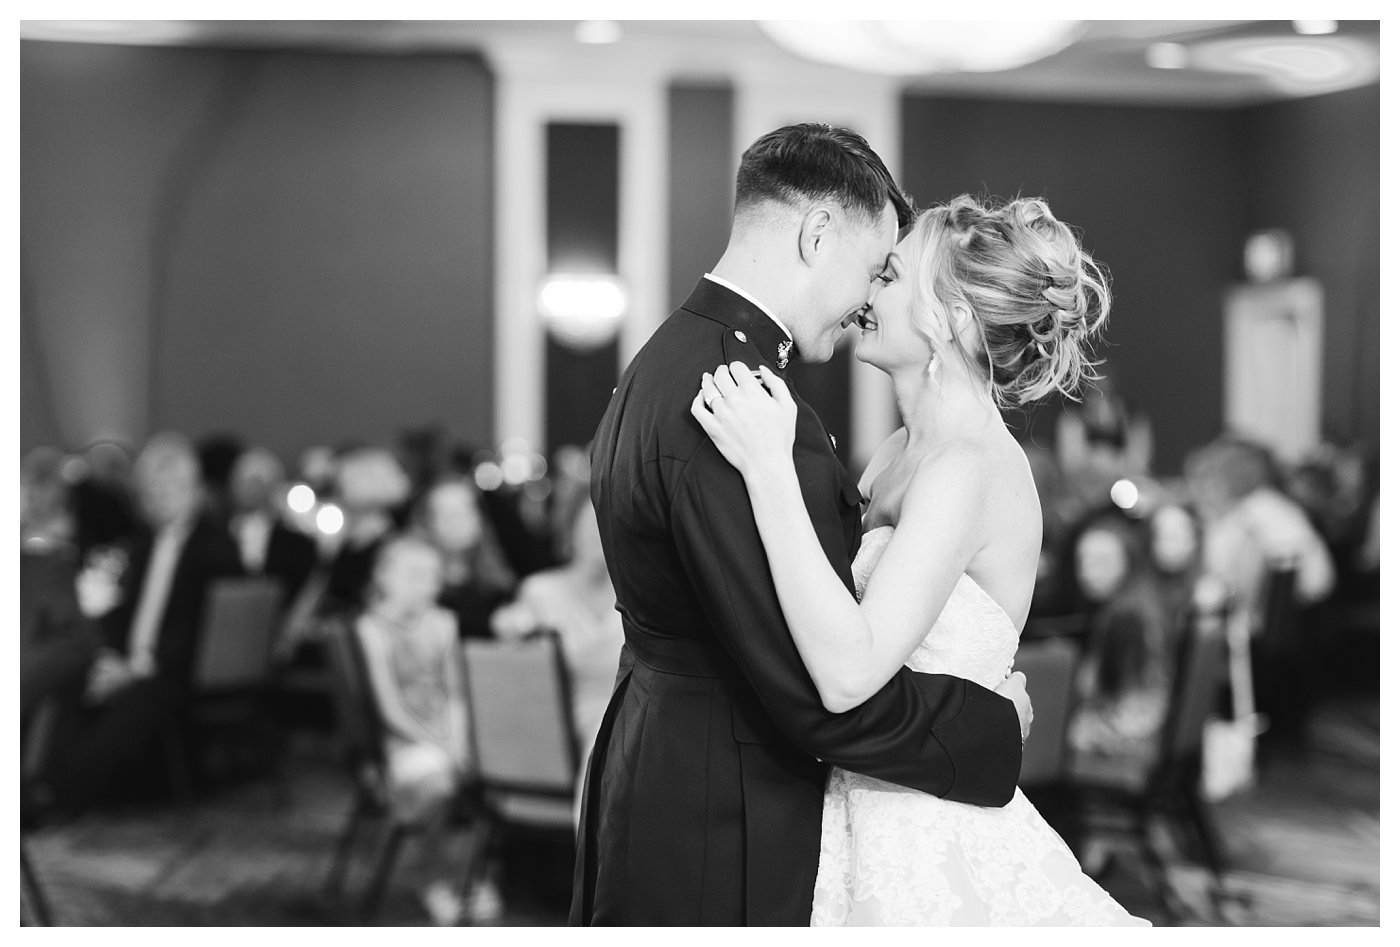 Marine Corp Wedding First Dance by Amanda and Grady Photography